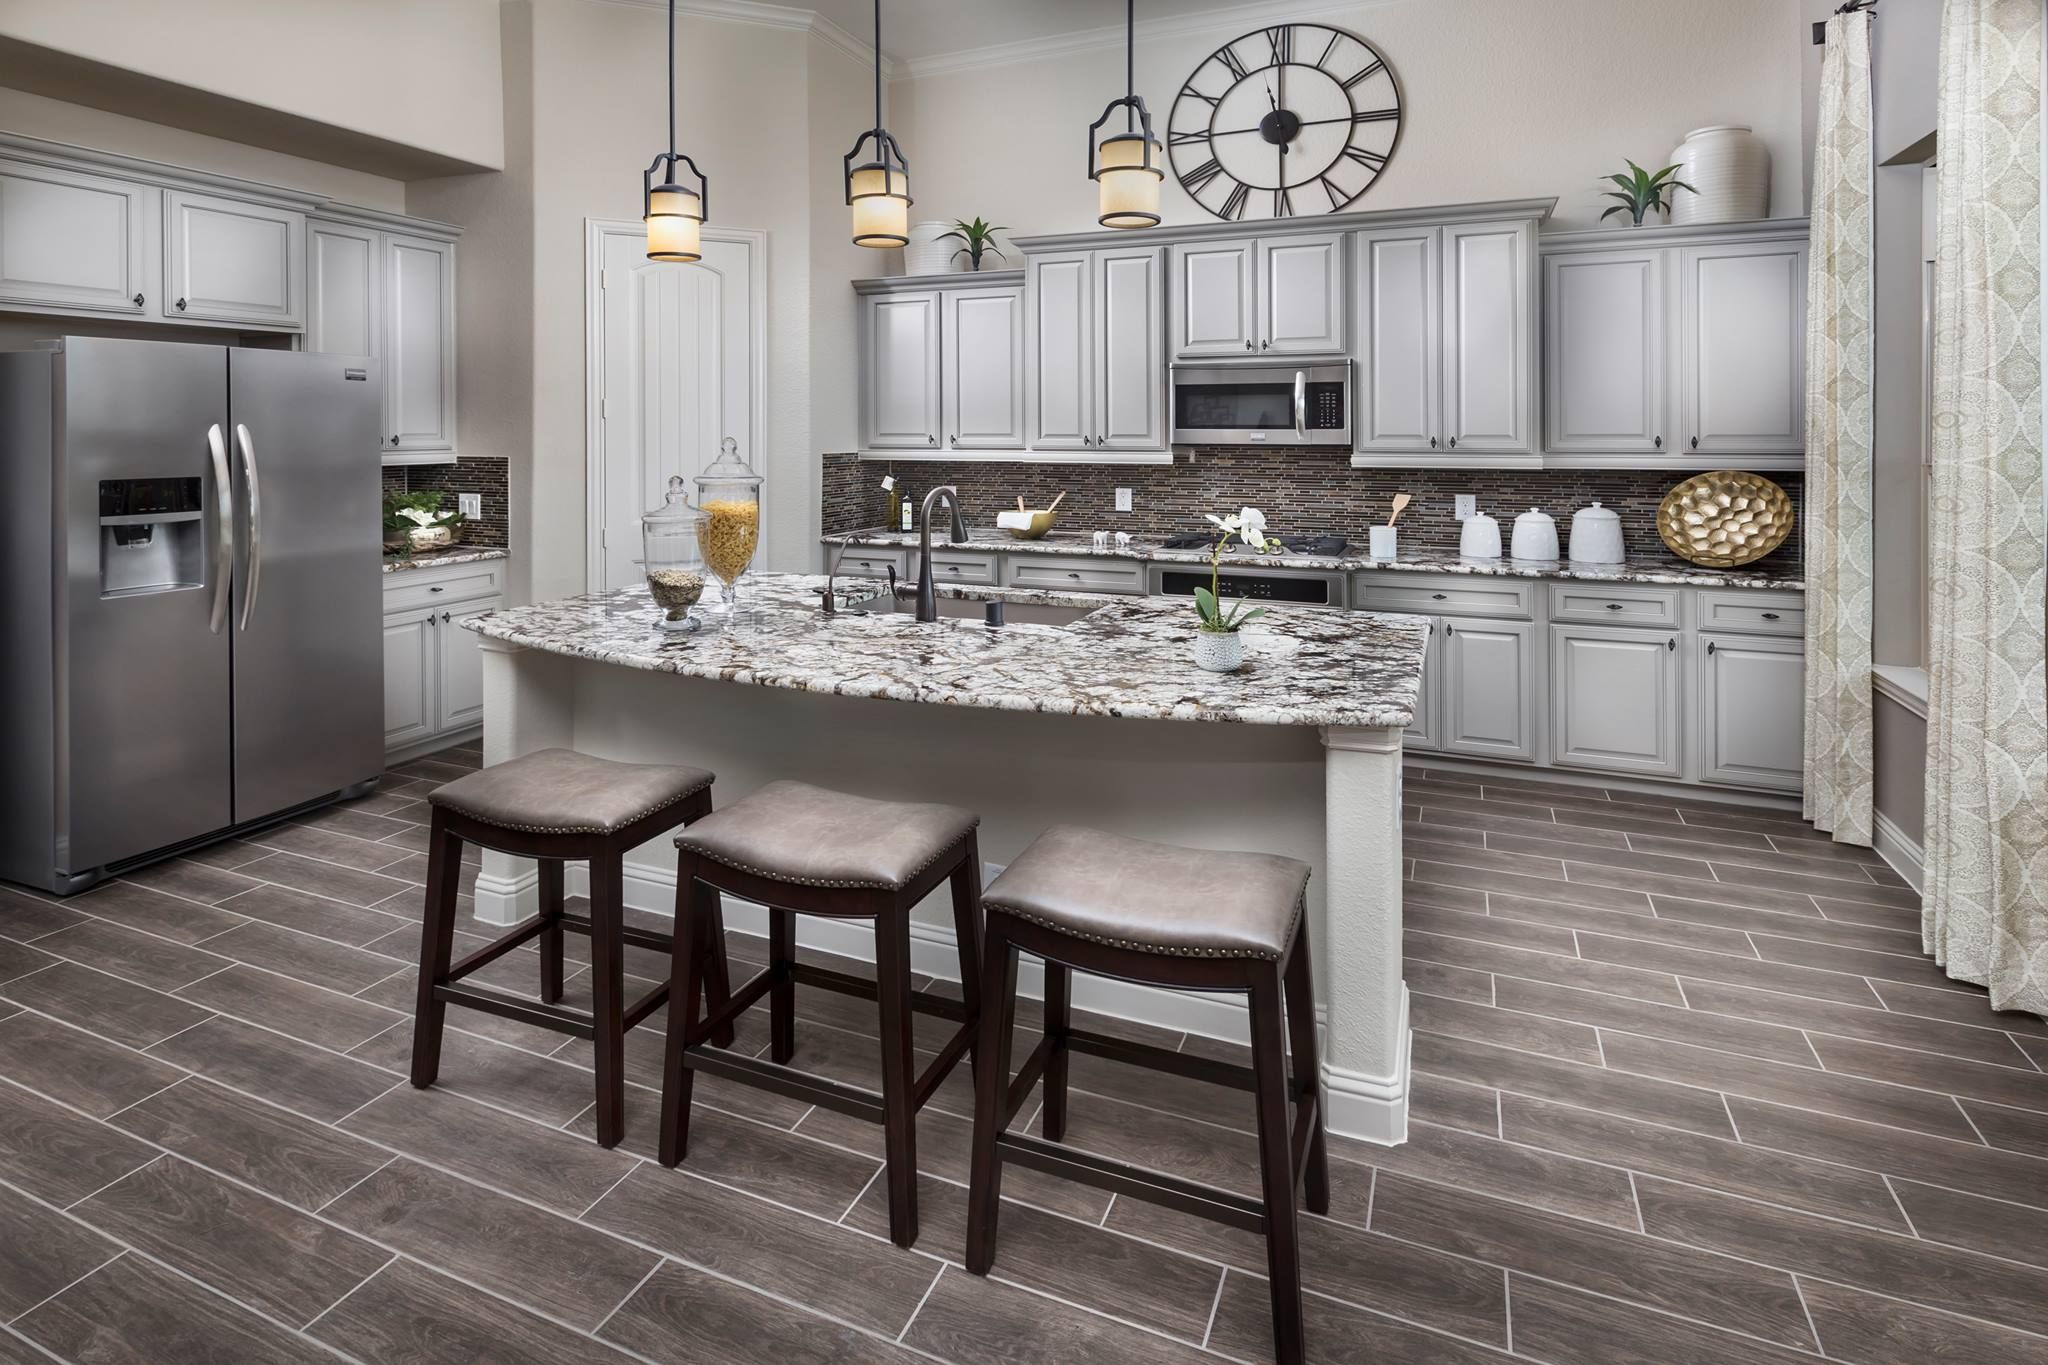 From the countertops to the OVEN what features are you ...